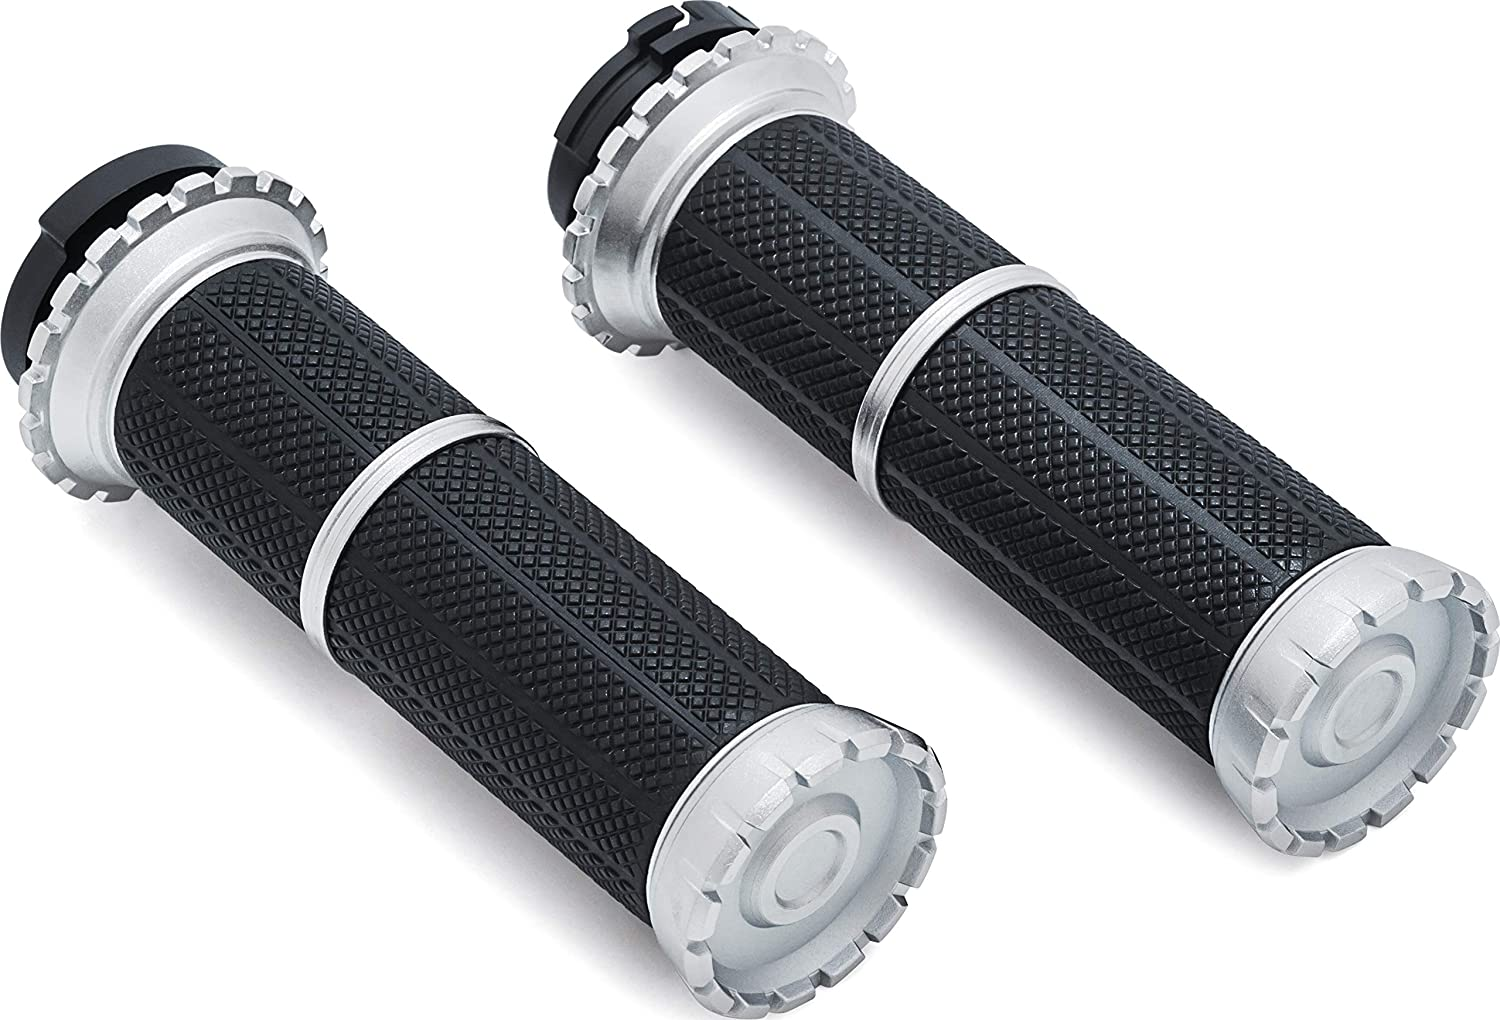 Electronic Throttle Control: 2008-19 Harley-Davidson Motorcycles Satin Black 1 Pair Kuryakyn 3583 Riot Handlebar Grips for Throttle and Clutch